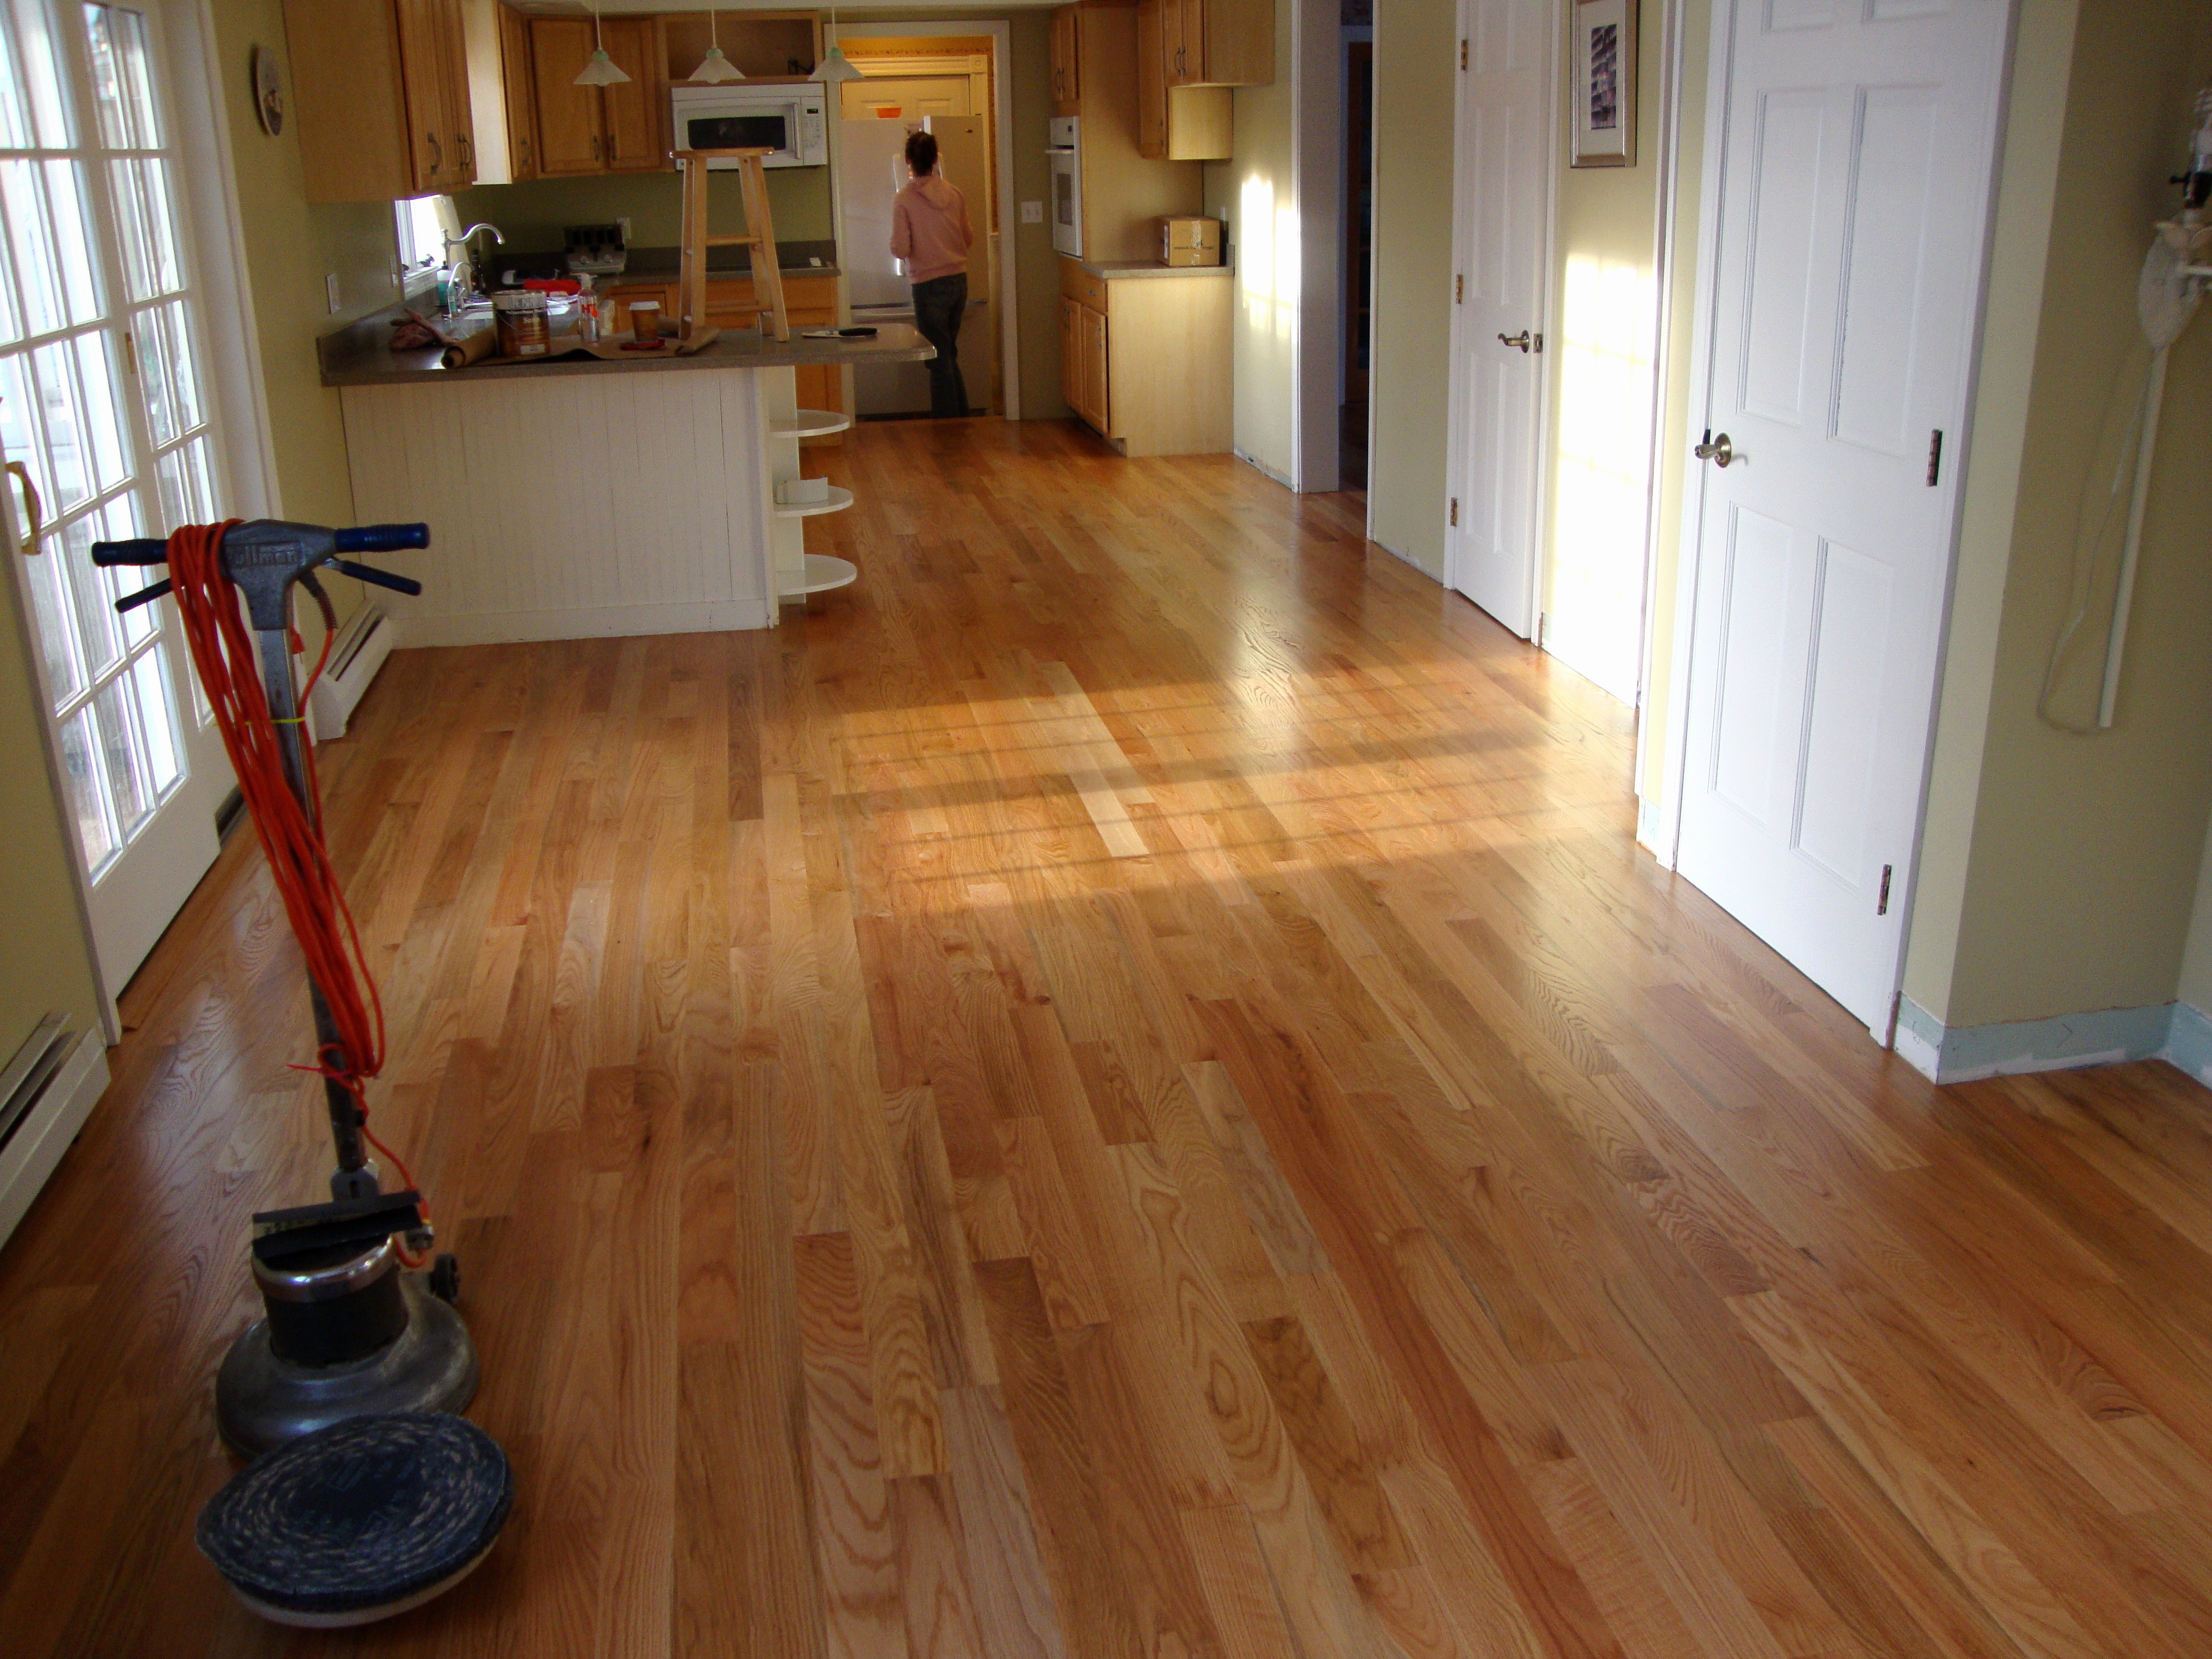 what does hardwood flooring cost installed of 17 new cost of hardwood floor installation pics dizpos com regarding cost of hardwood floor installation new 50 best plywood hardwood floors pics 50 s image of